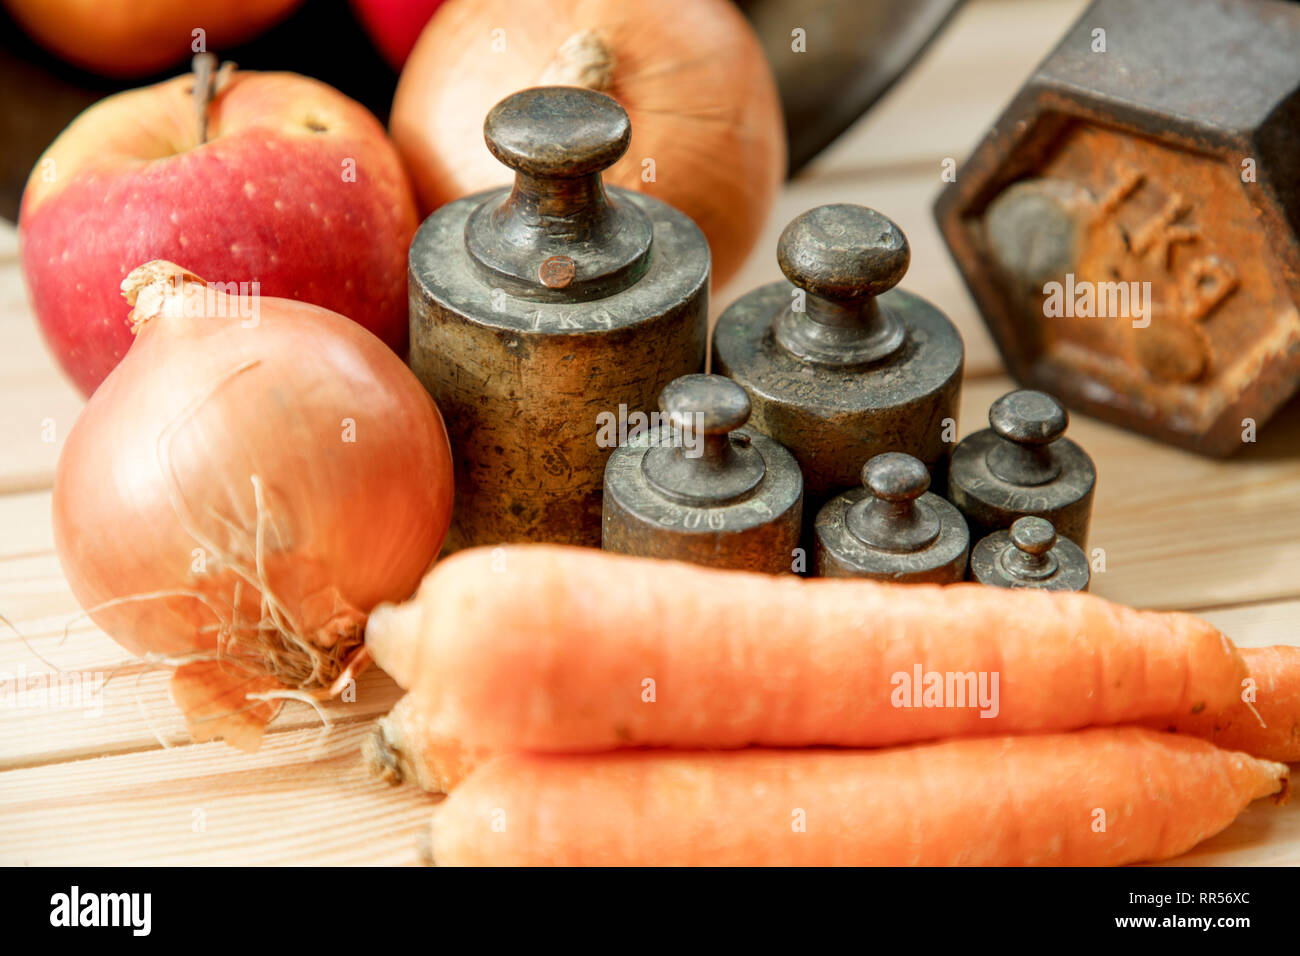 Old rusty scale weight on wooden table, Old rusty iron scale weight, vegetables - Stock Image